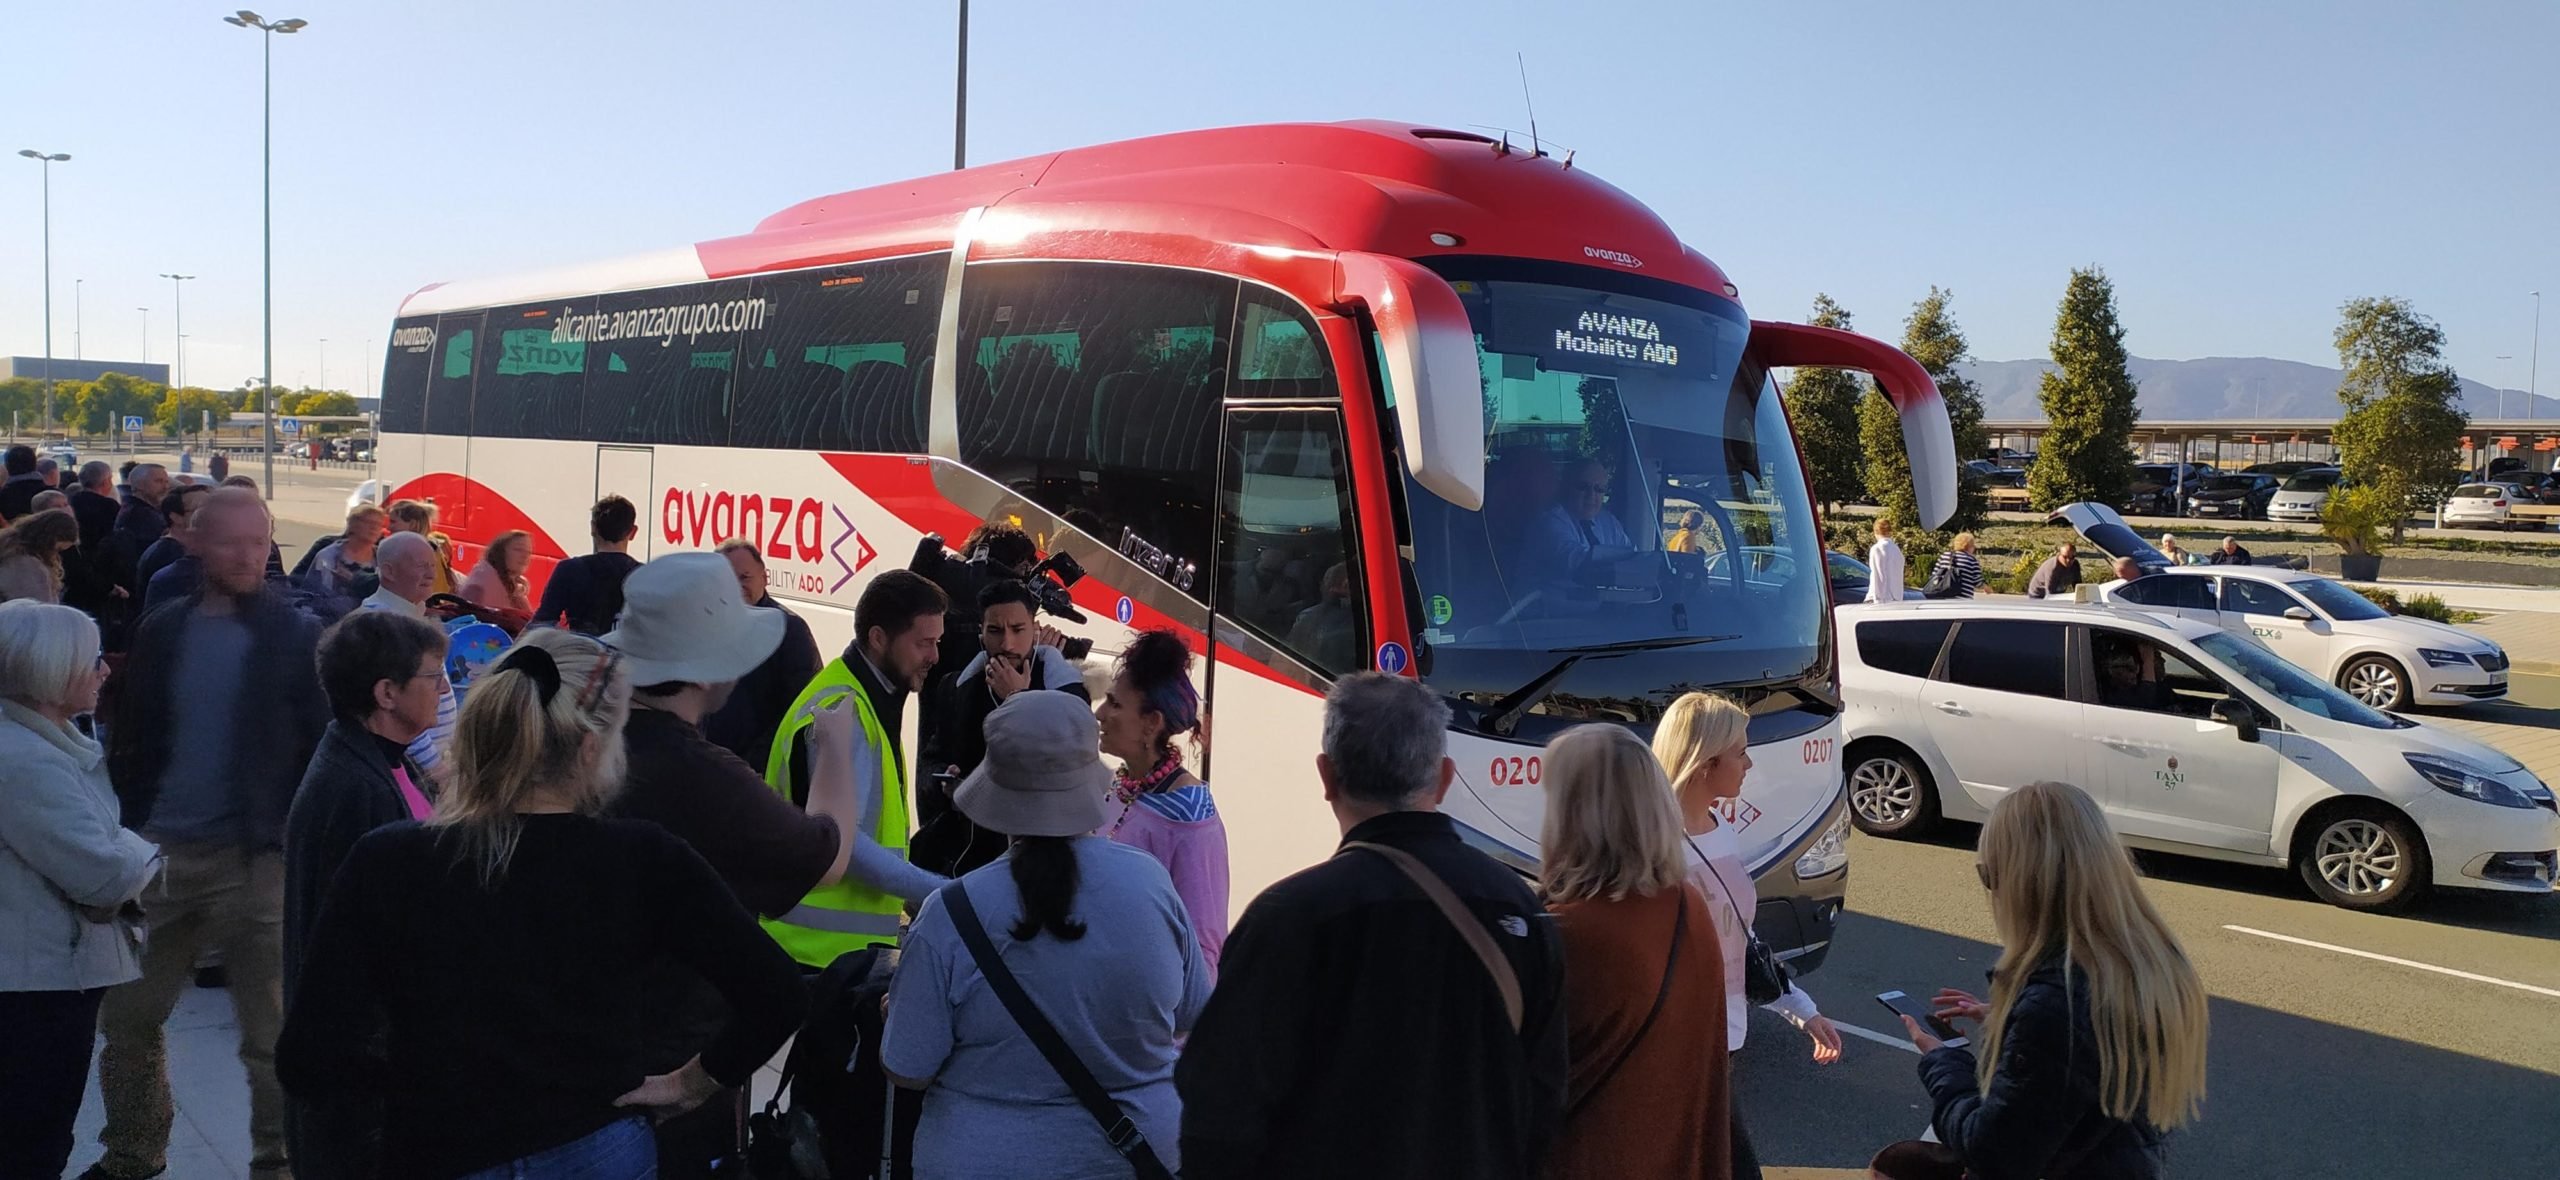 Many passengers were bused to Corvera and Alicante airports